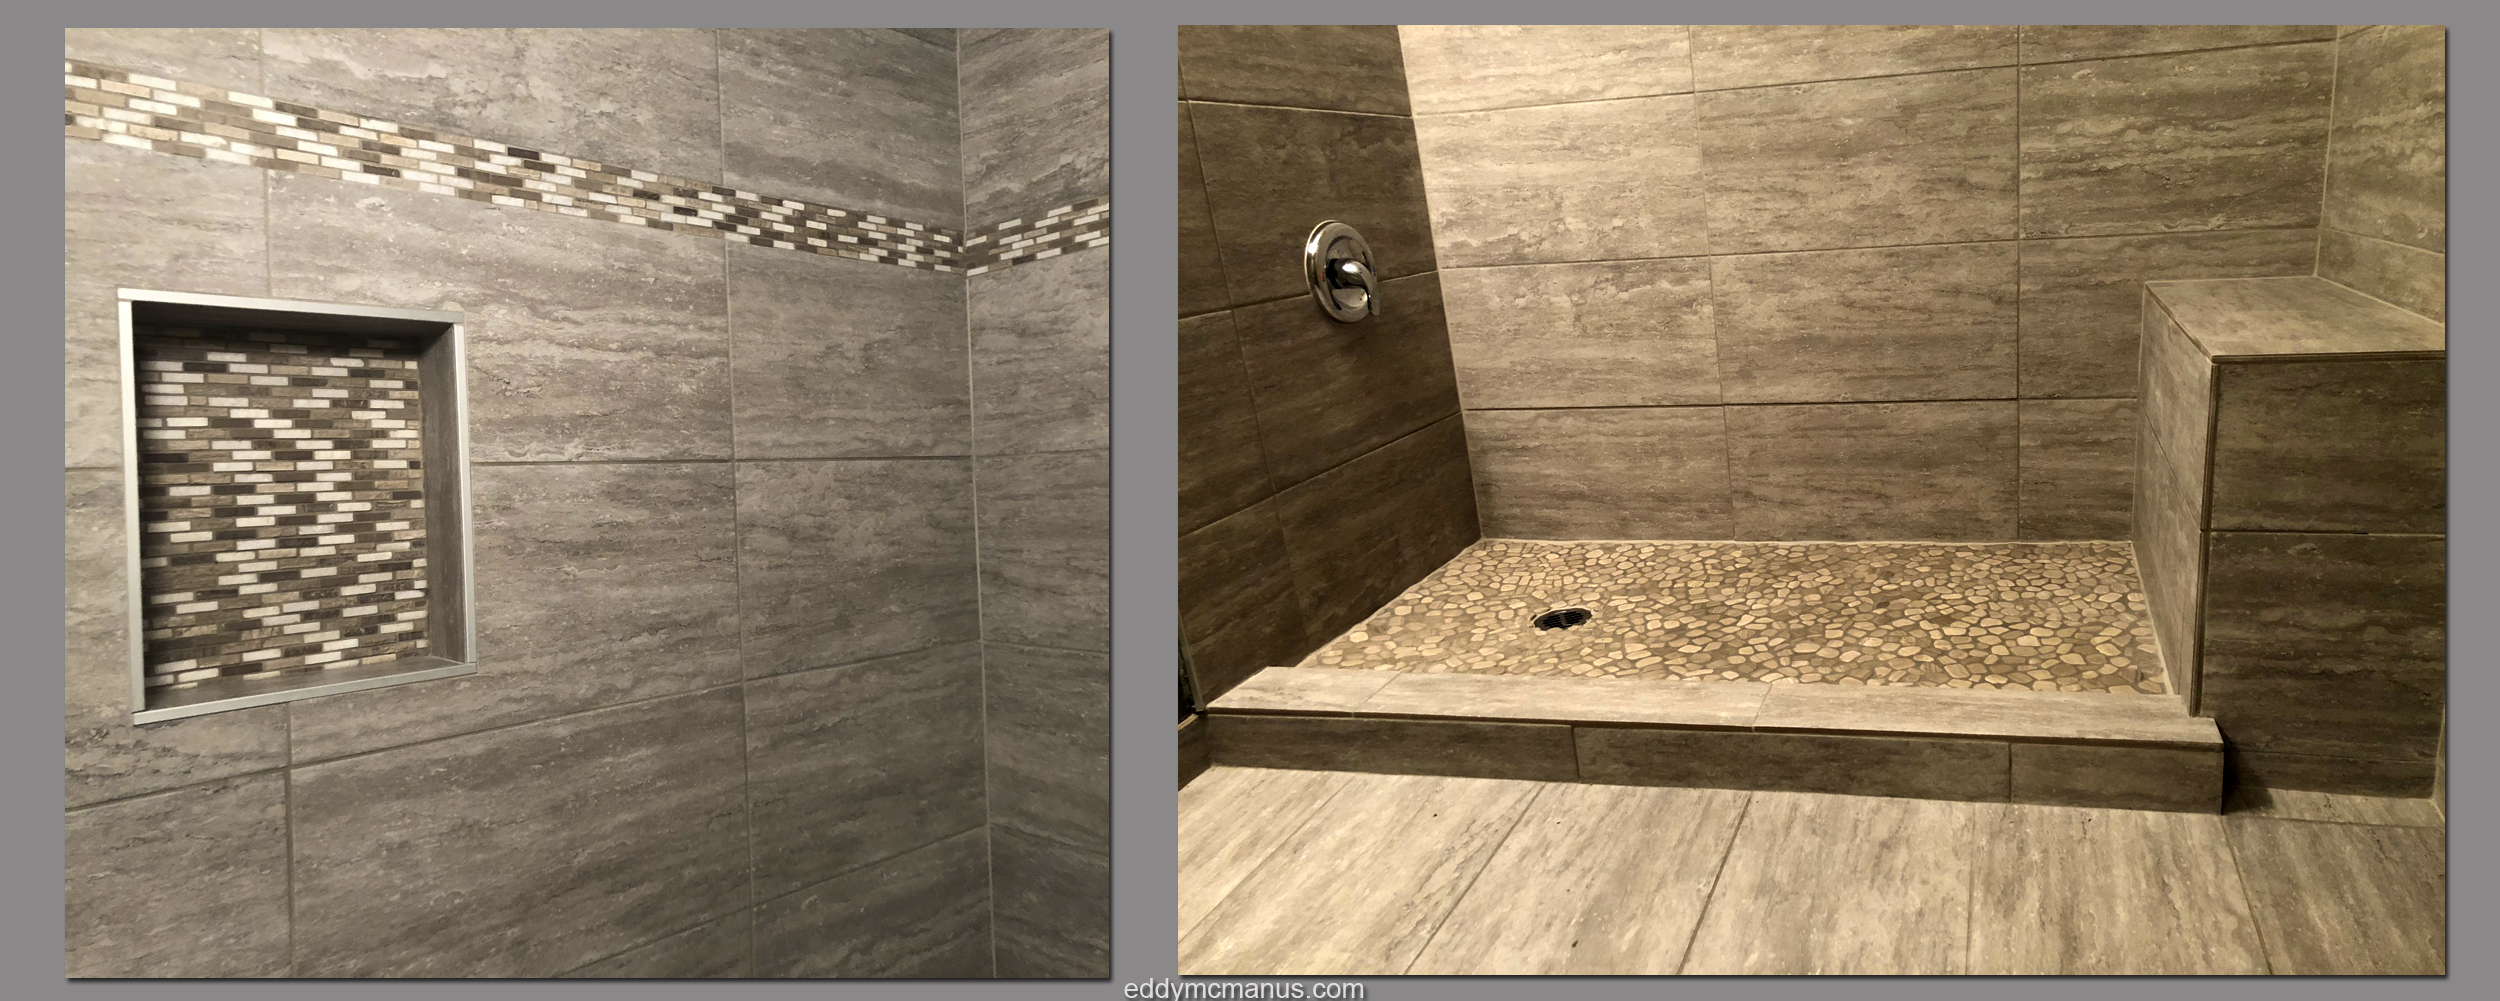 After Construction - Images of Completed Tub Enclosure Remodel